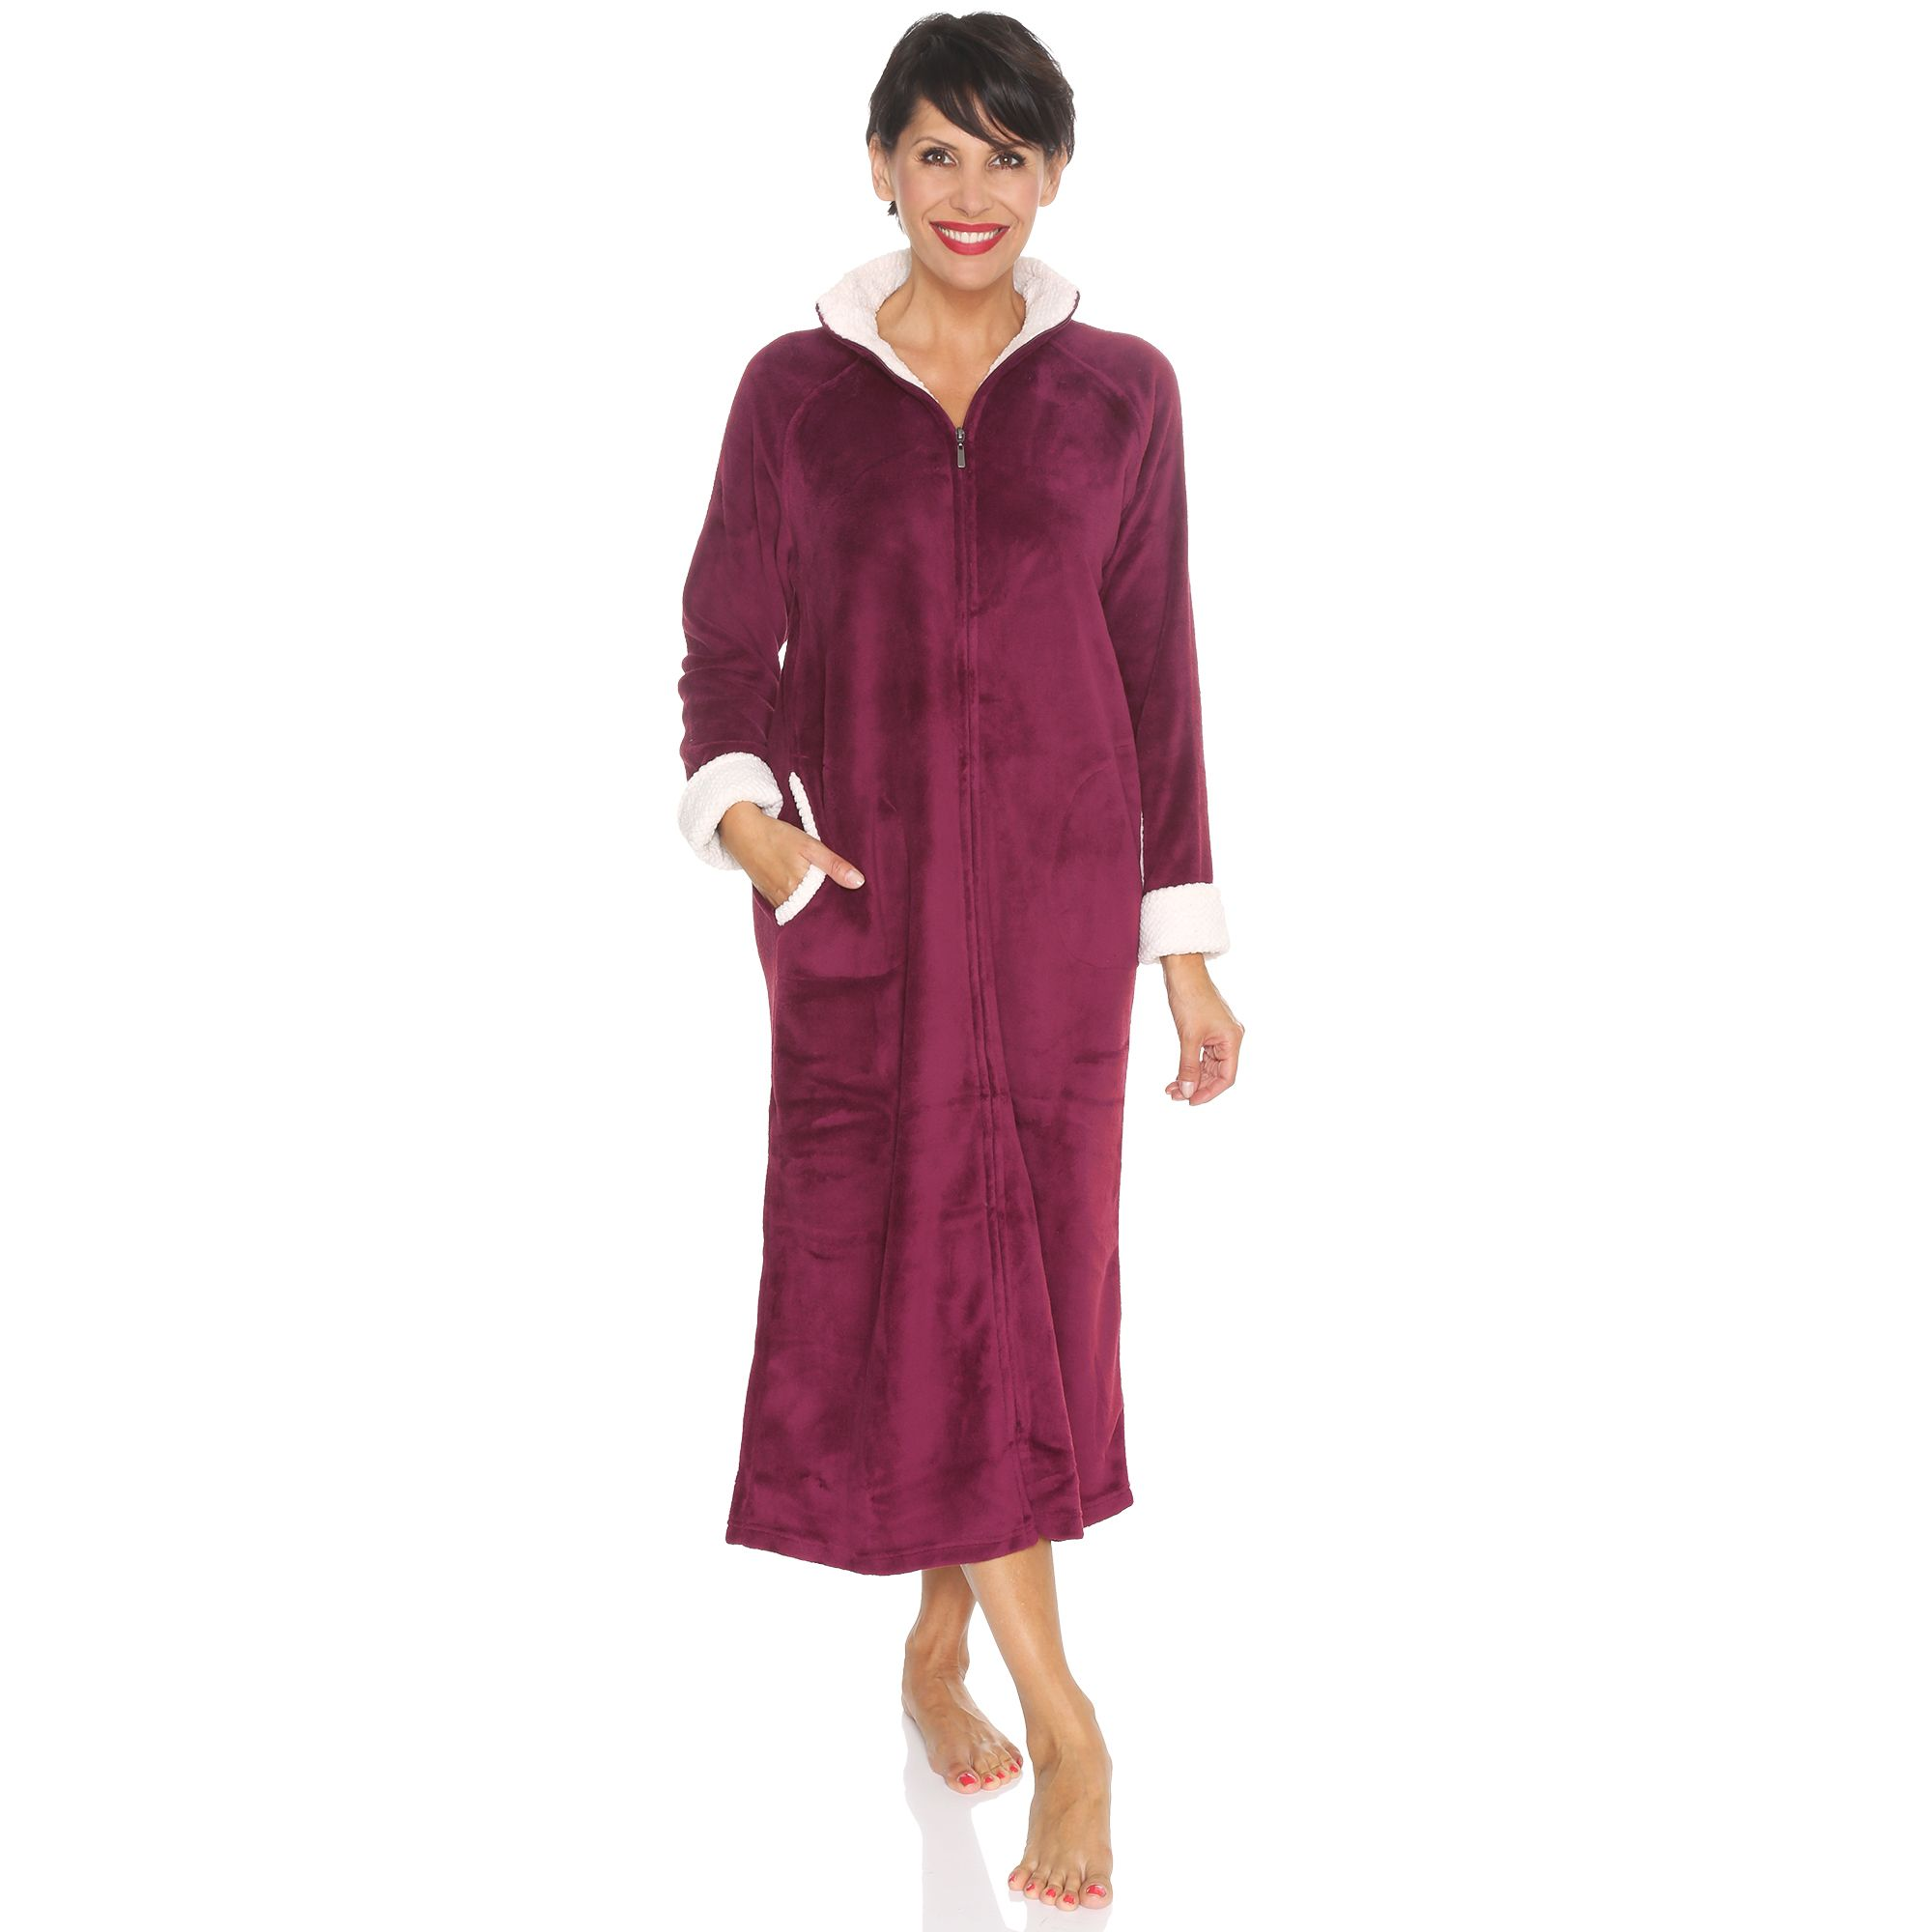 Robe De Chambre Femme Longue Zippee Best Dress France